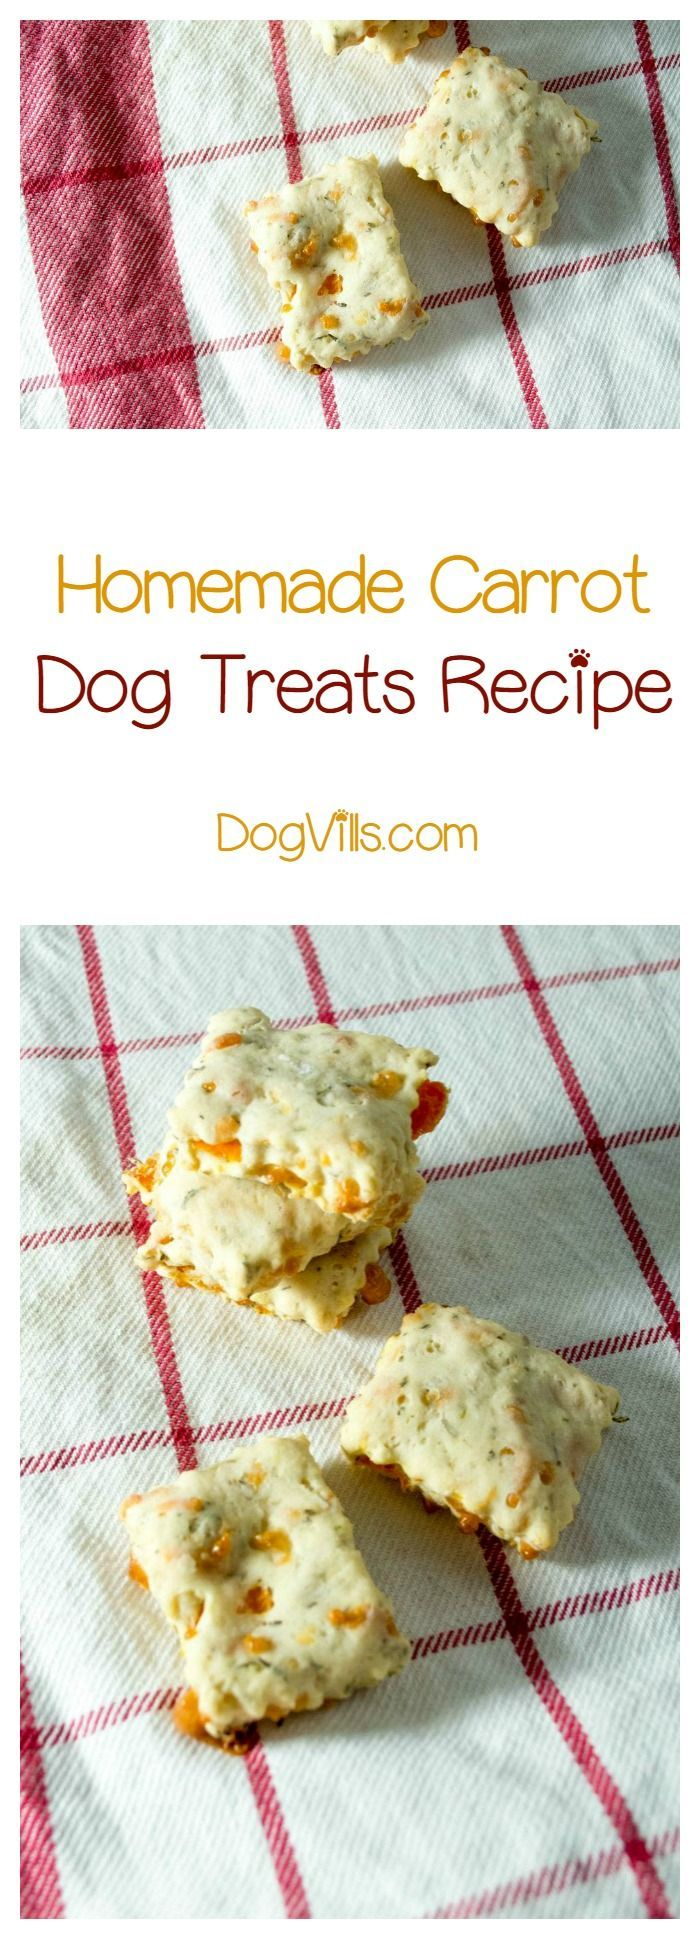 2925 best homemade dog treats images on pinterest homemade dog homemade carrot dog treats forumfinder Gallery